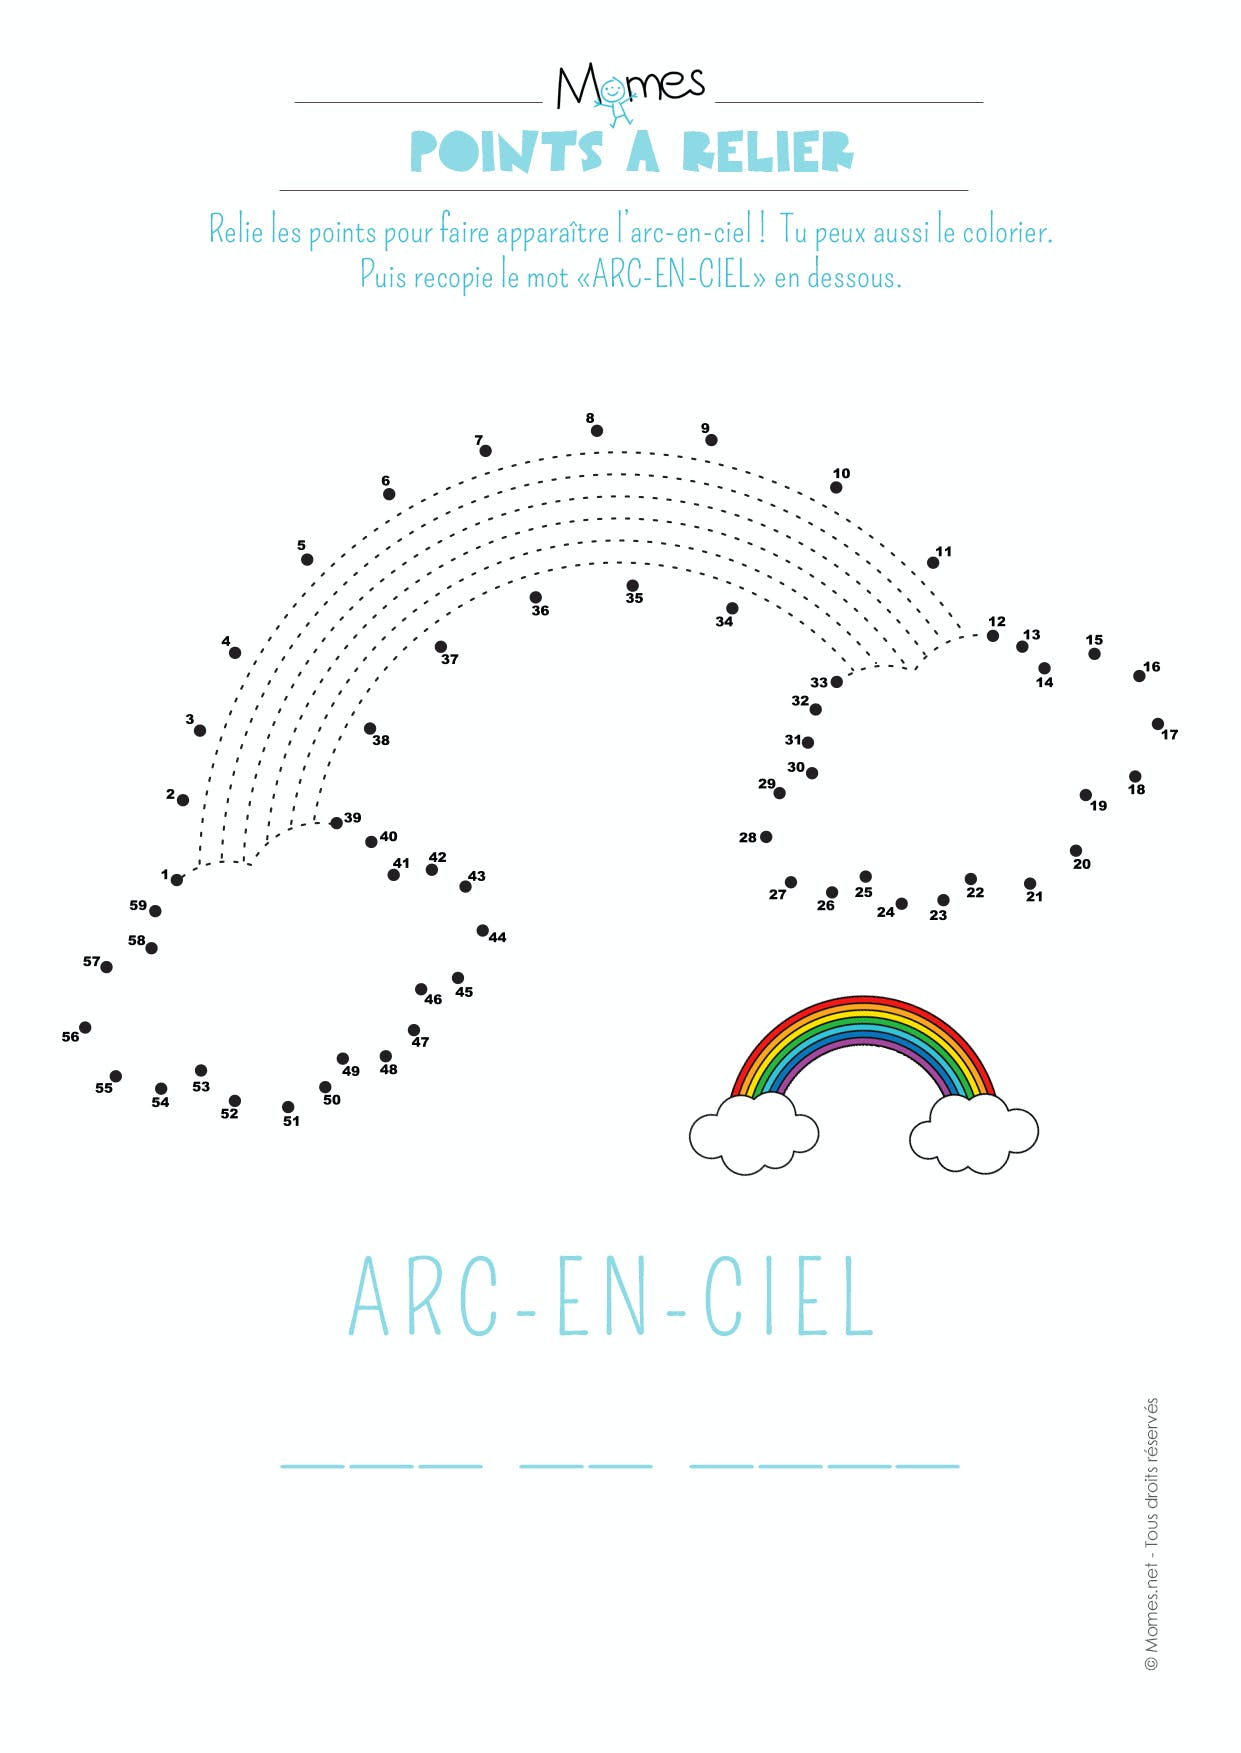 Points à relier de l'arc-en-ciel